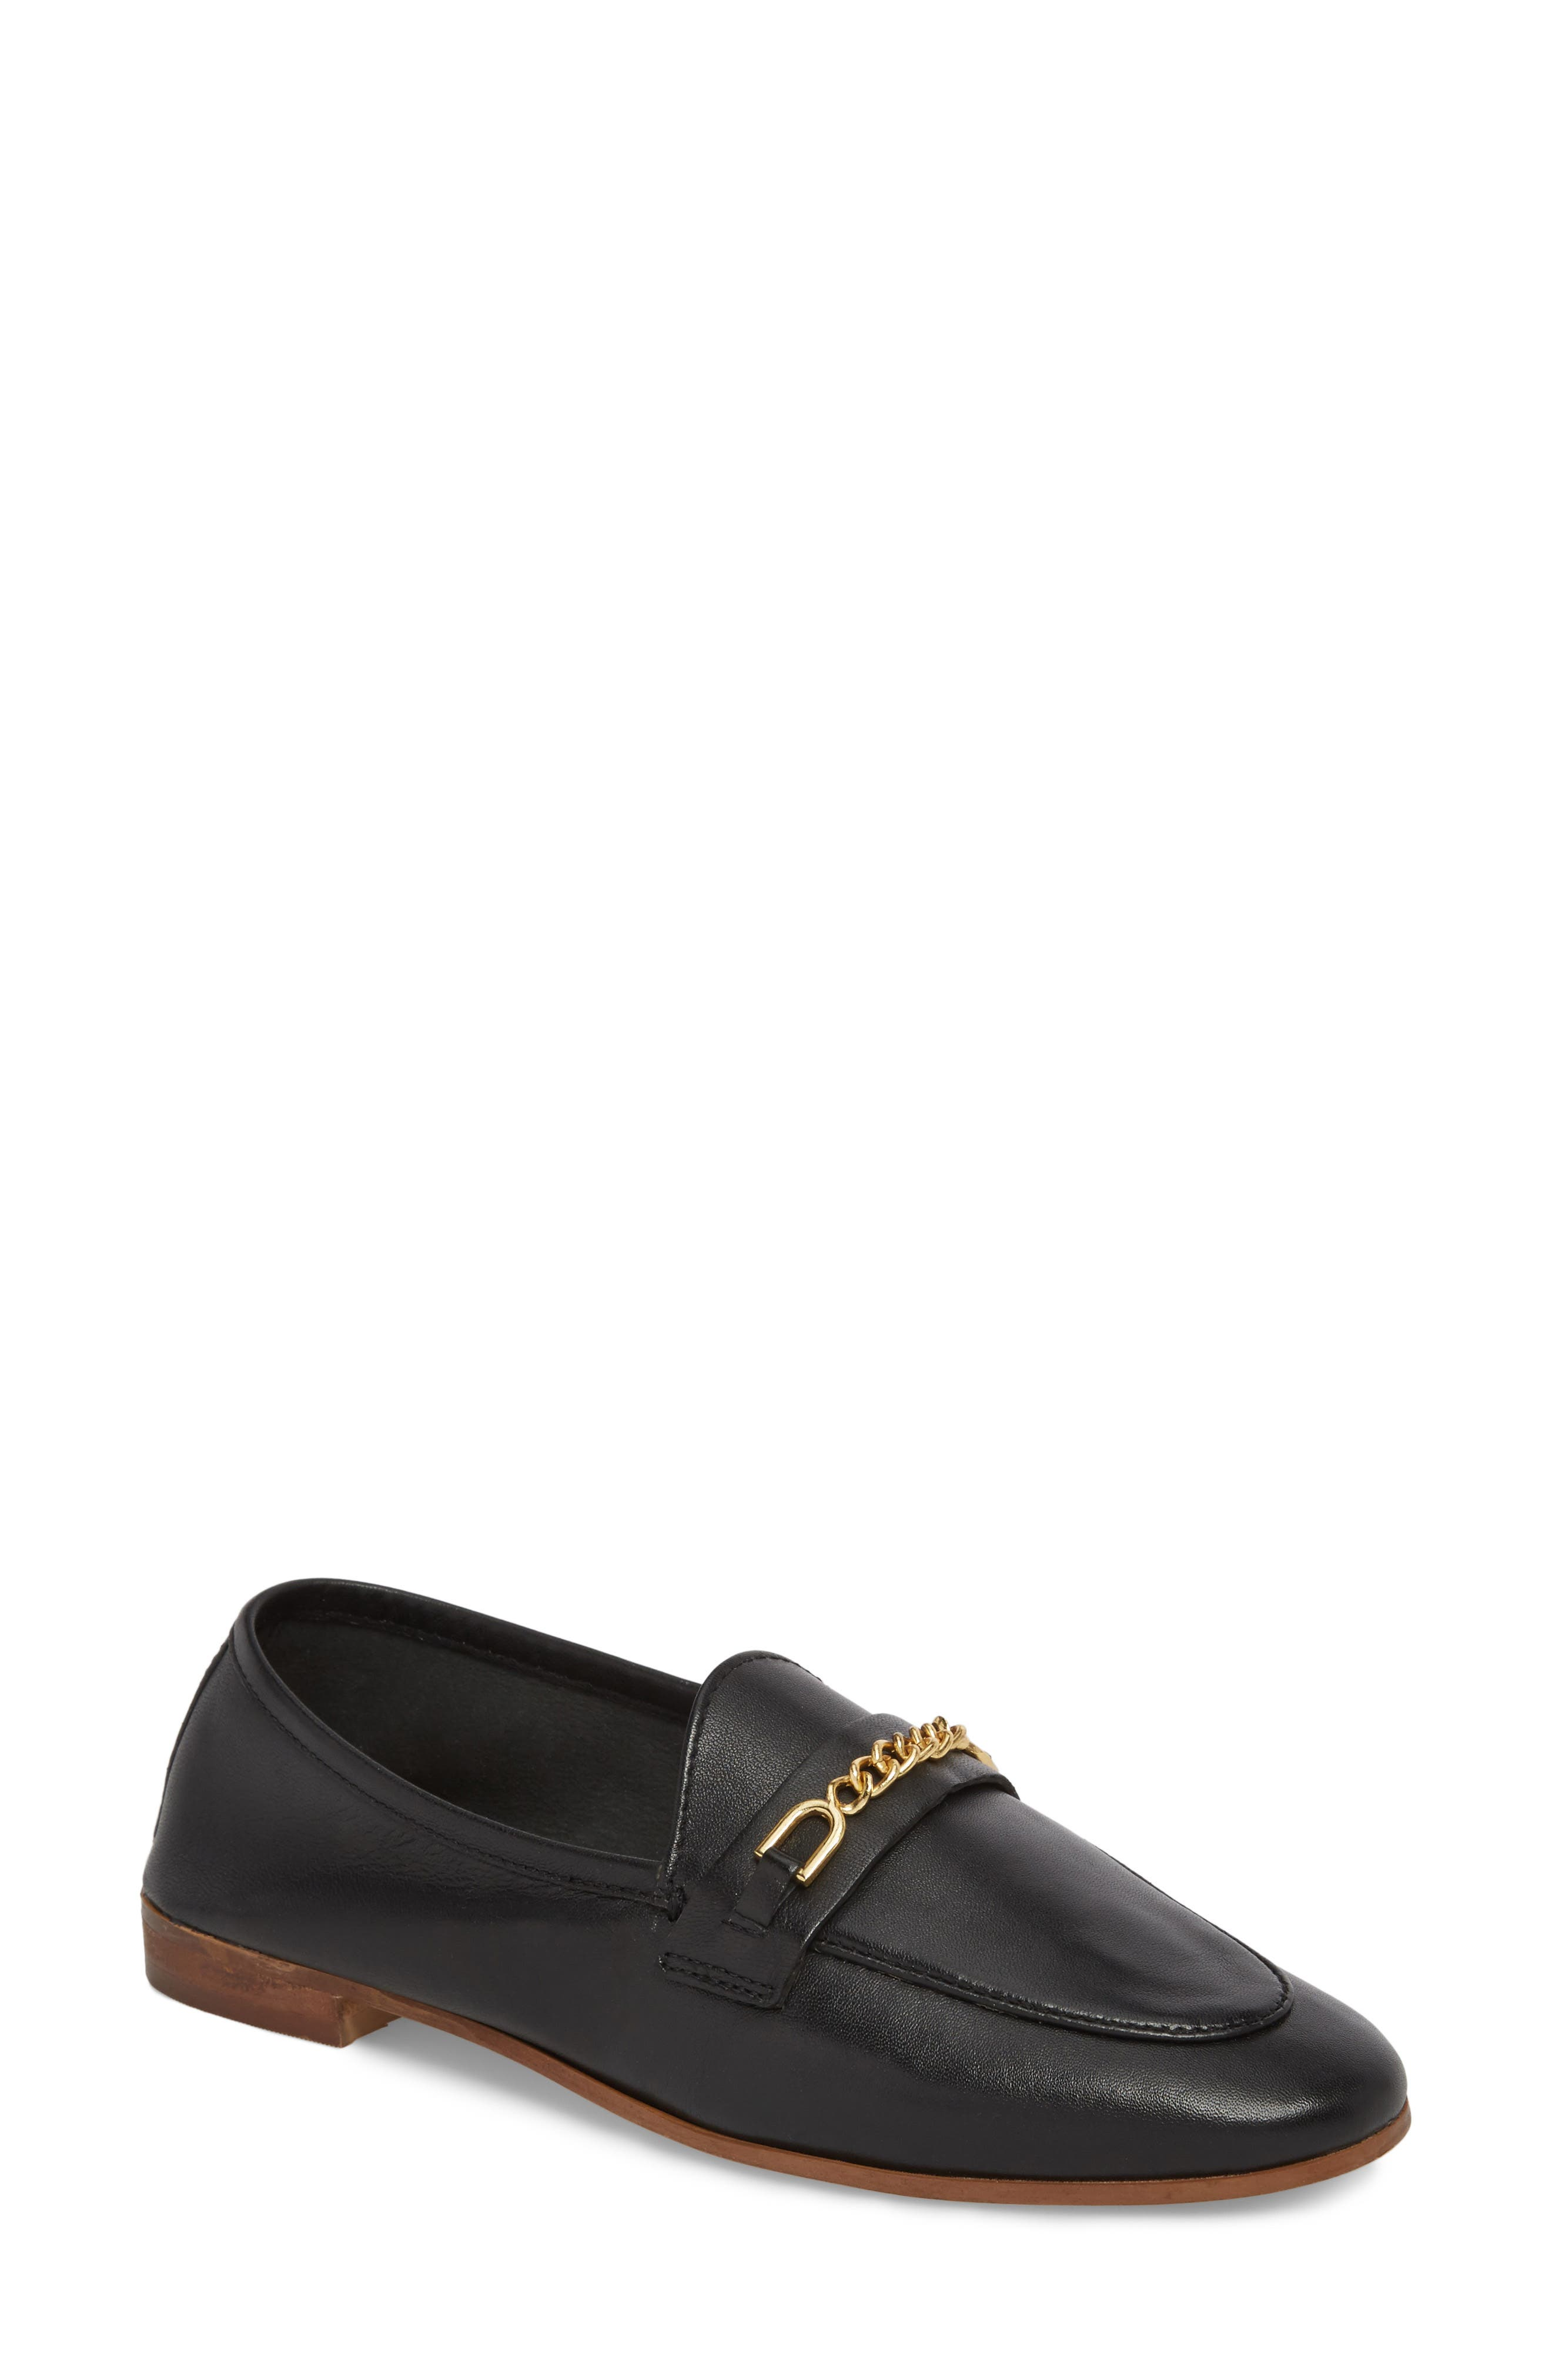 Alternate Image 1 Selected - Topshop Key Trim Chain Loafer (Women)